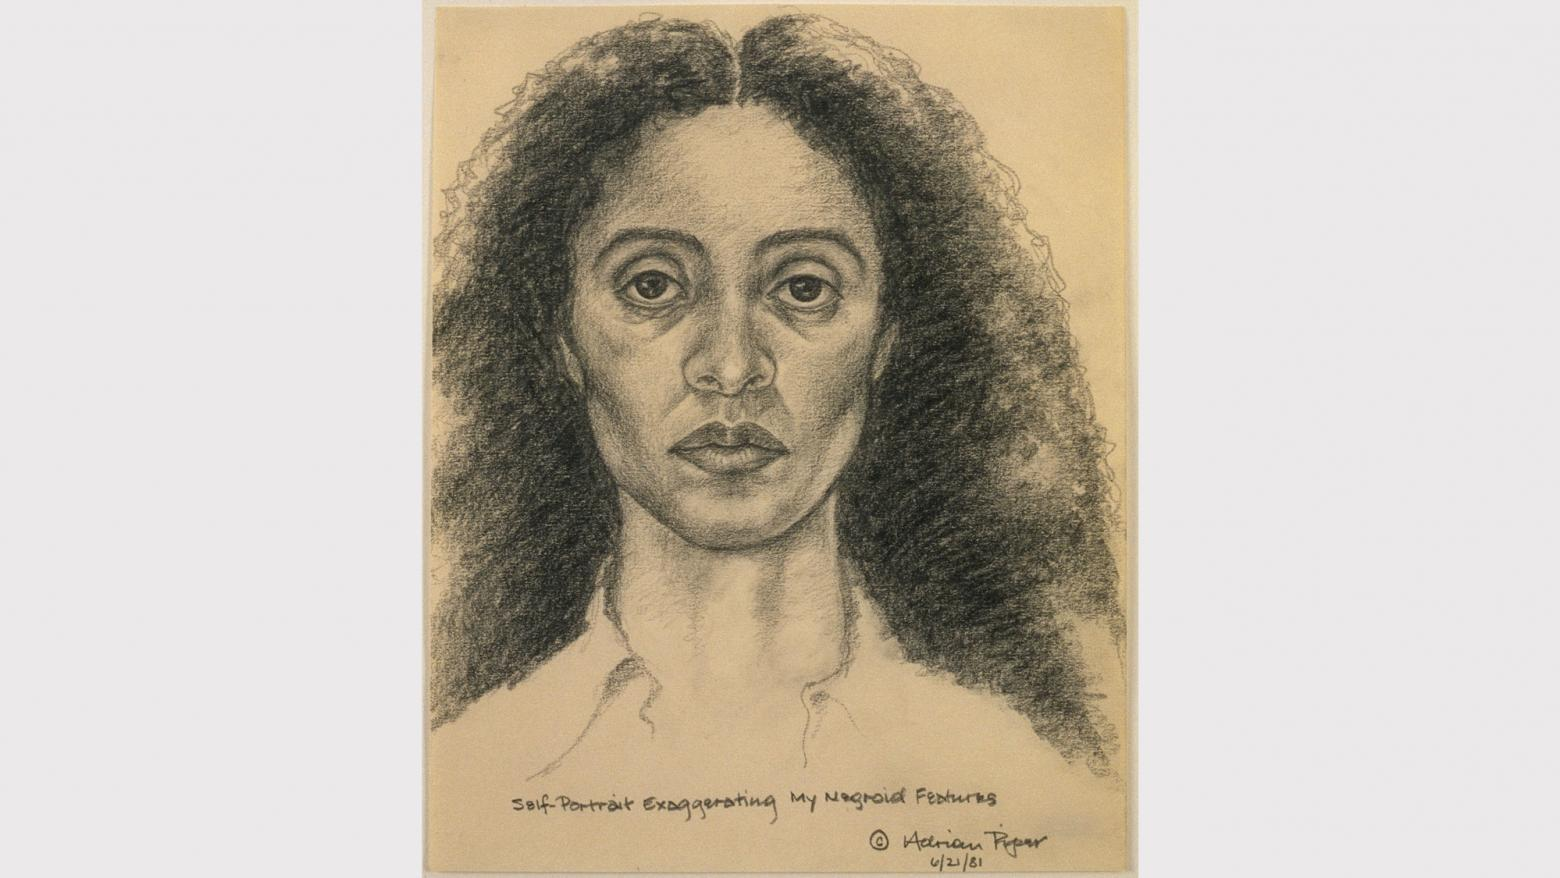 Adrian Piper, Self-Portrait Exaggerating My Negroid Features, 1981. Pencil on paper. 10 × 8 in. (25.4 × 20.3 cm). The Eileen Harris Norton Collection. © Adrian Piper Research Archive Foundation Berlin.